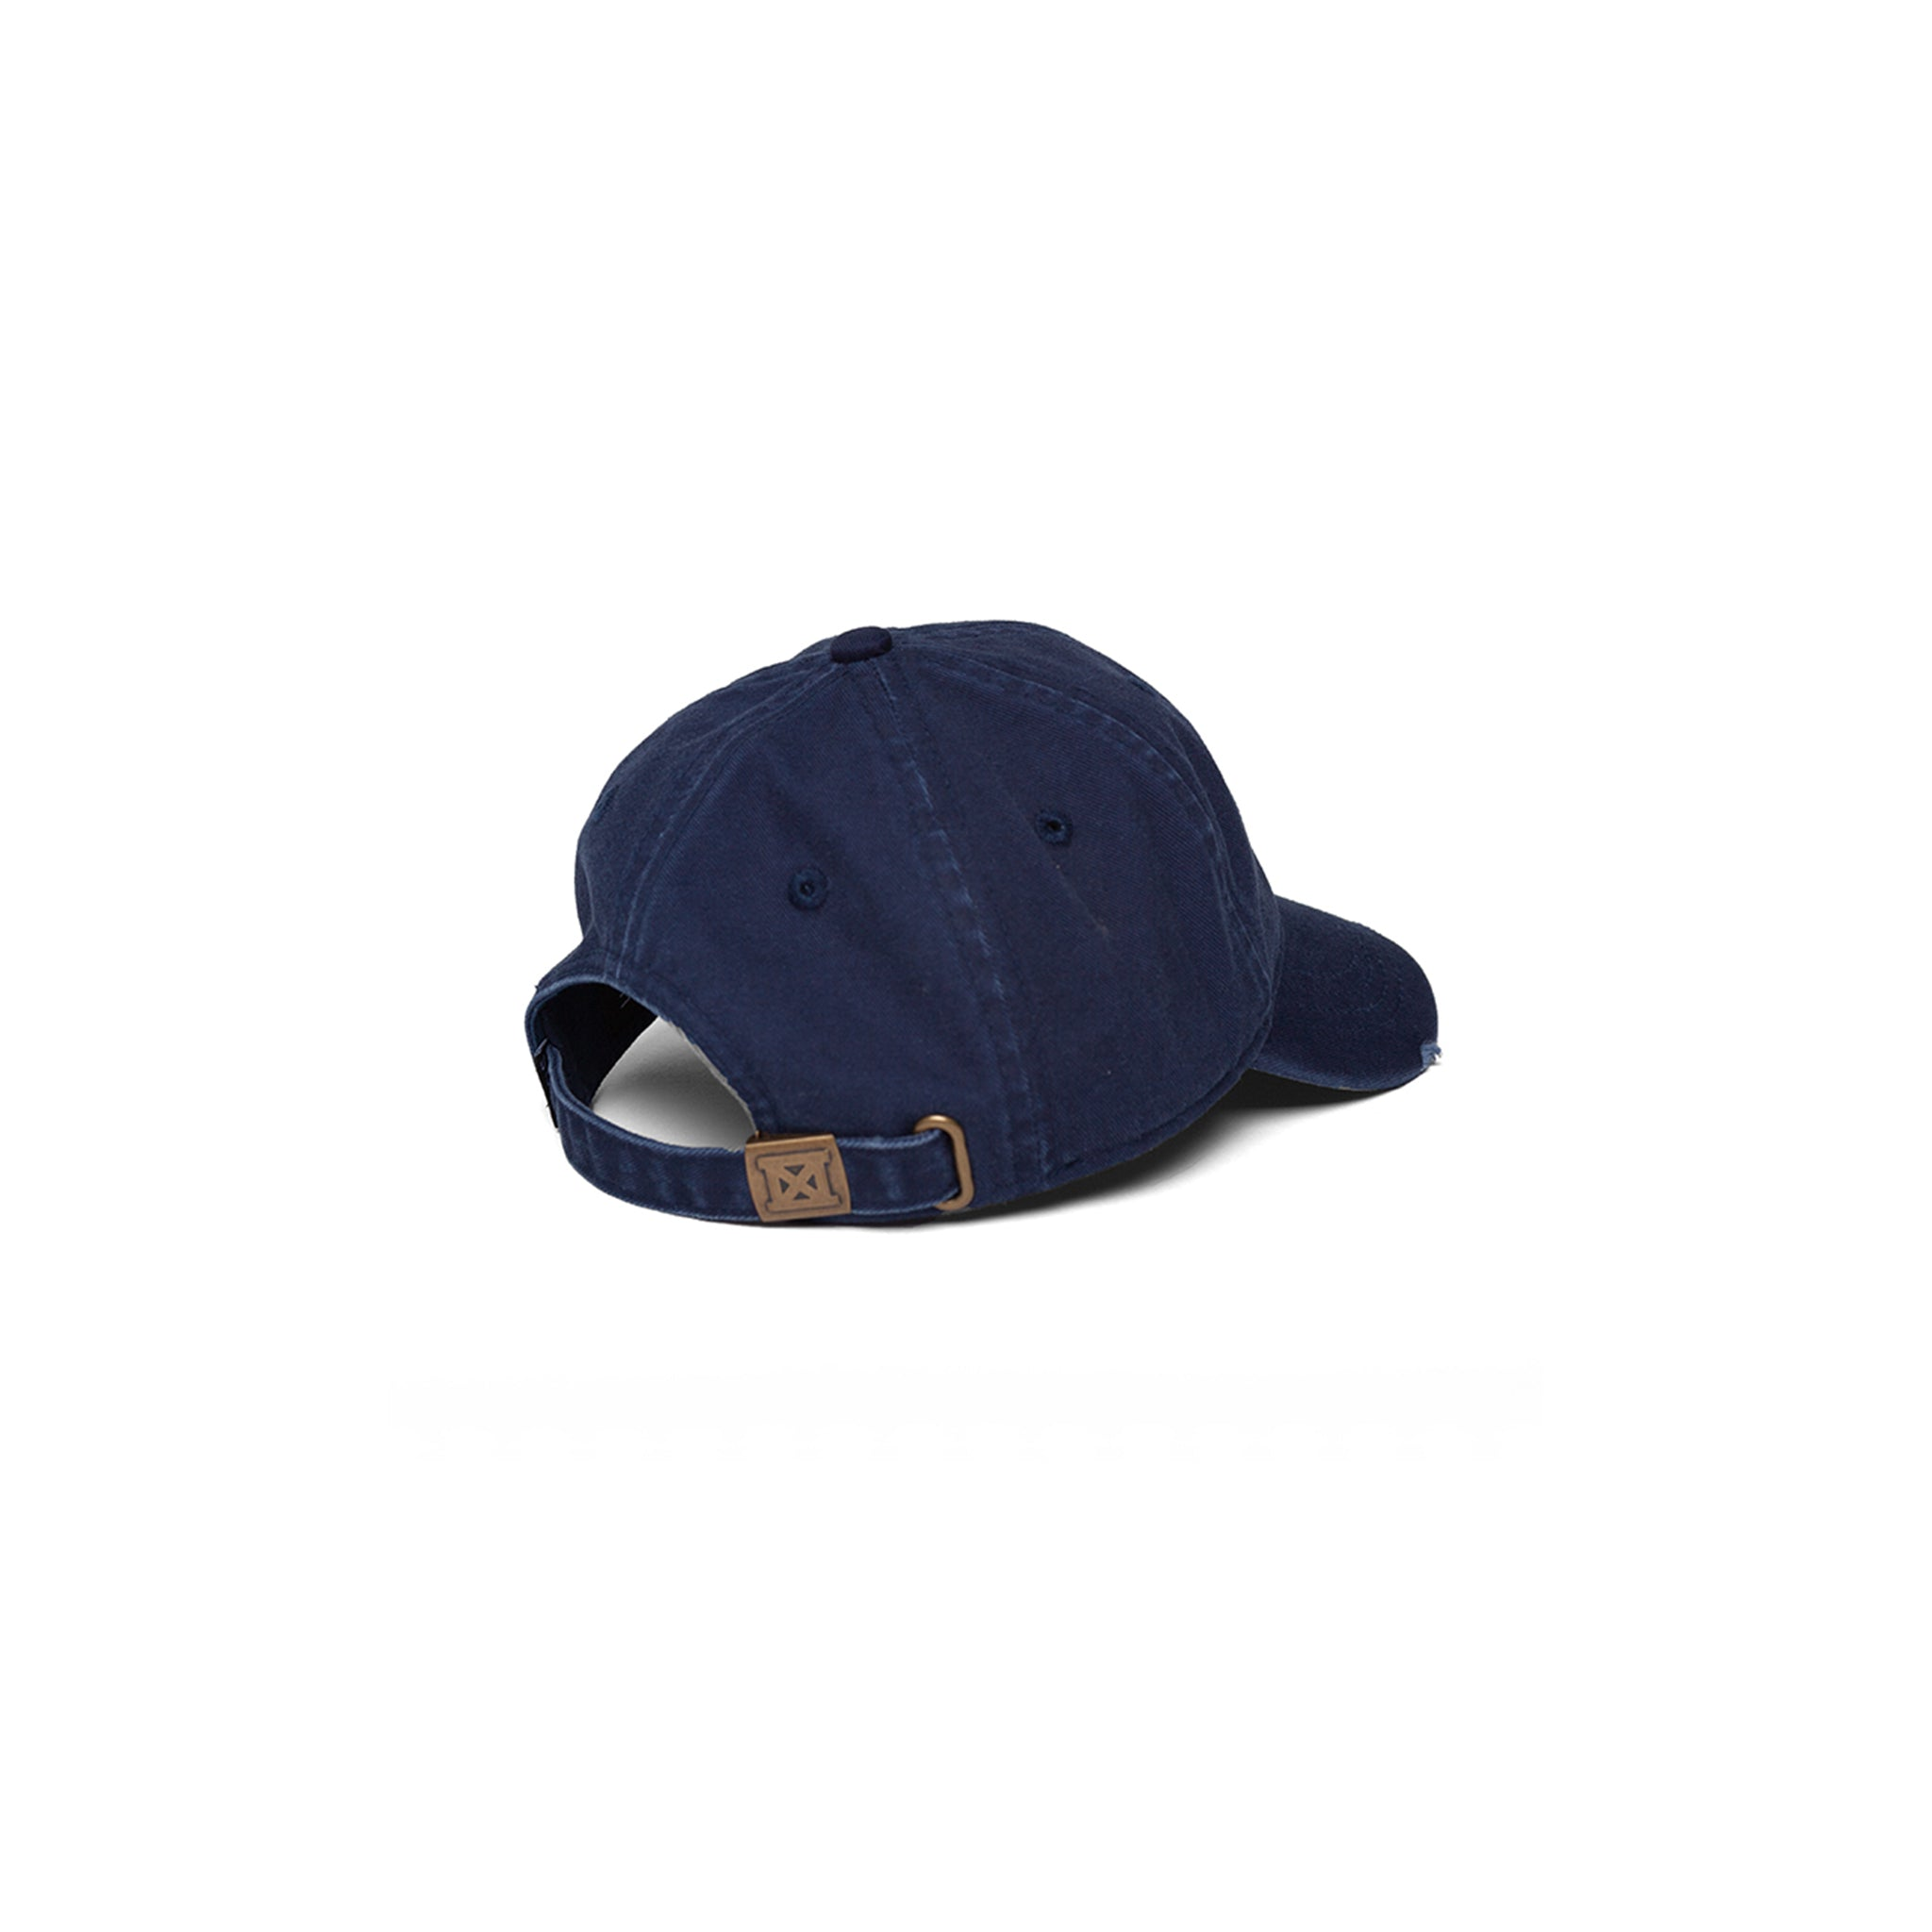 Signature KC Son Hat - Kids Size - Blueberry